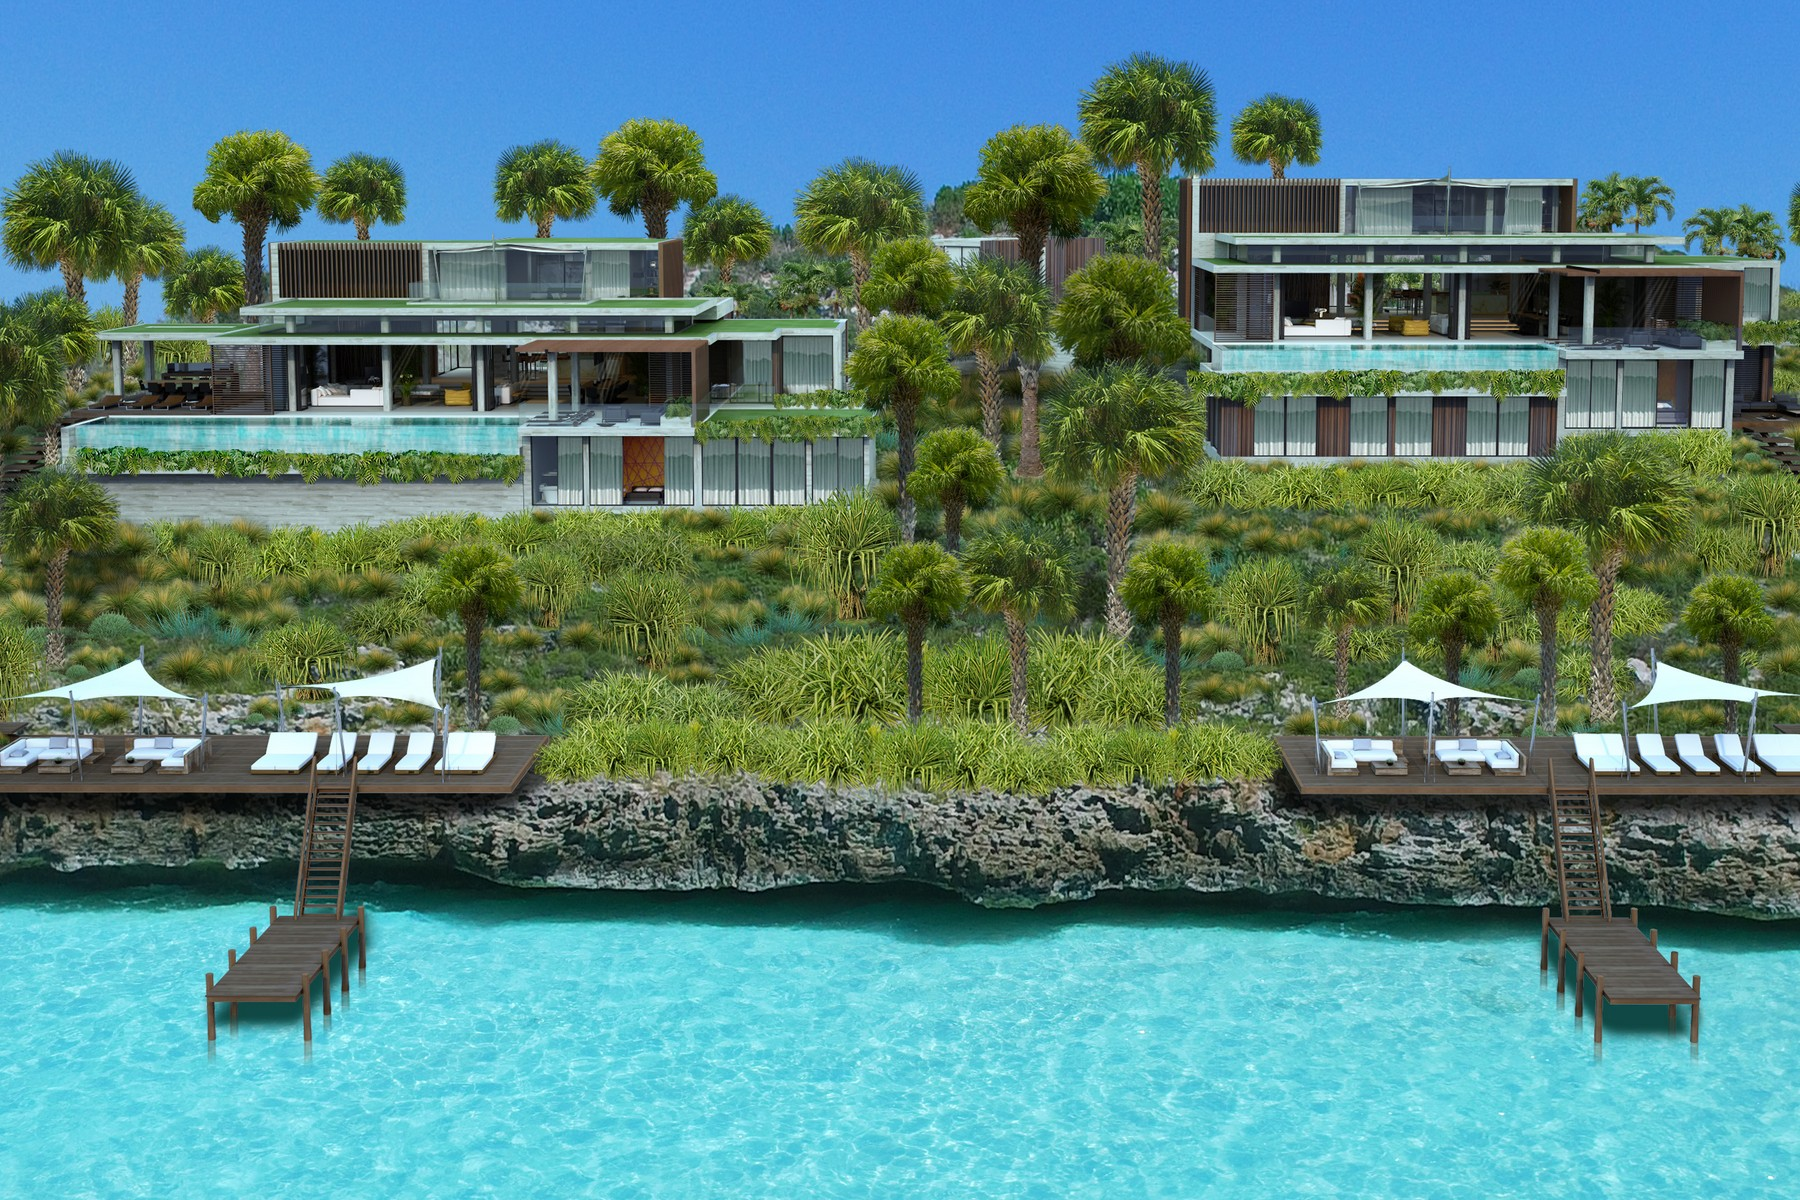 Single Family Homes for Sale at Headland Villas - Lot 1 Turtle Tail, Providenciales Turks And Caicos Islands